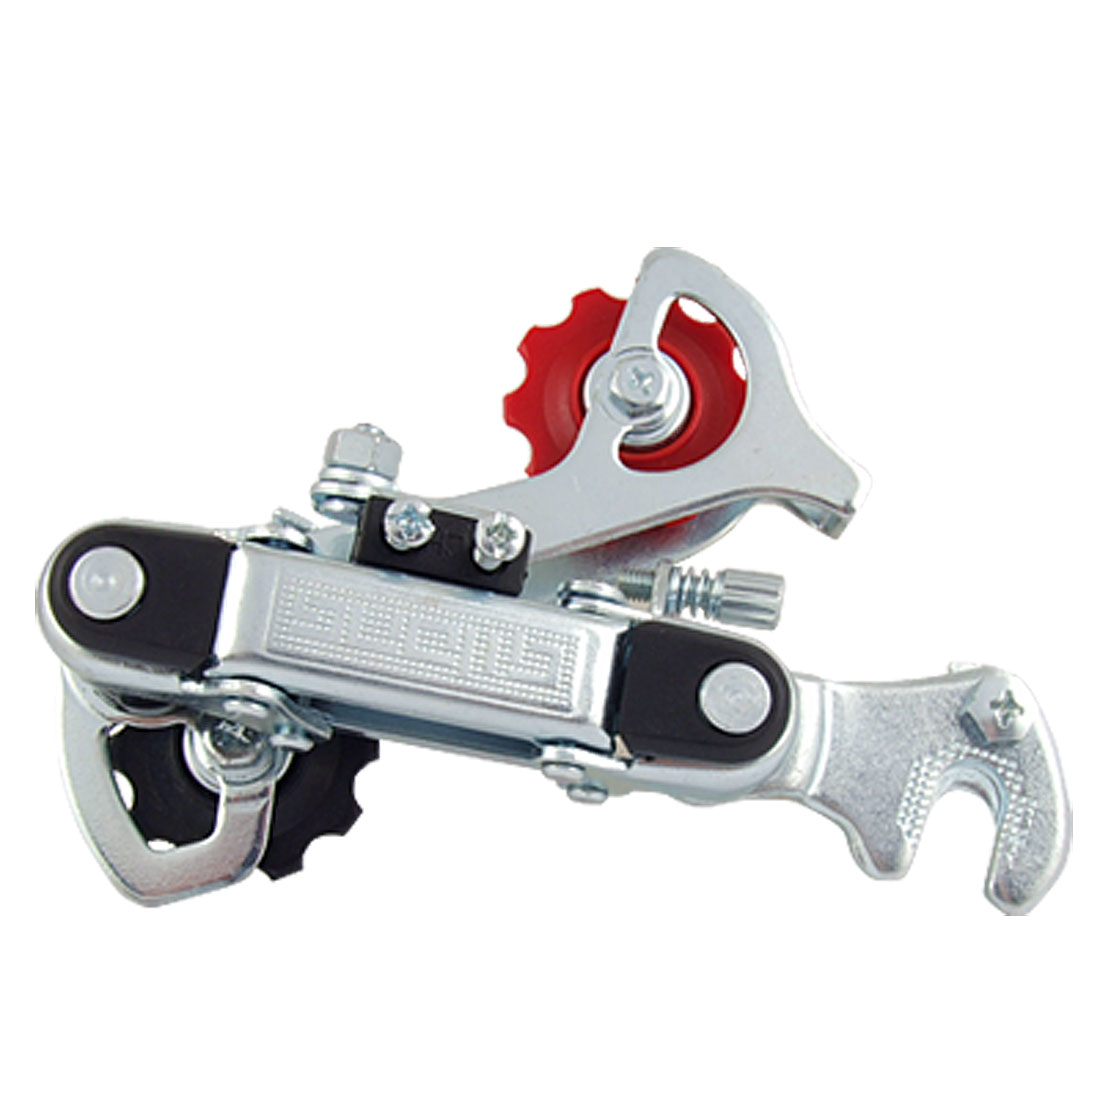 Replacement Part Silver Tone Rear Derailleur for Bike Bicycle